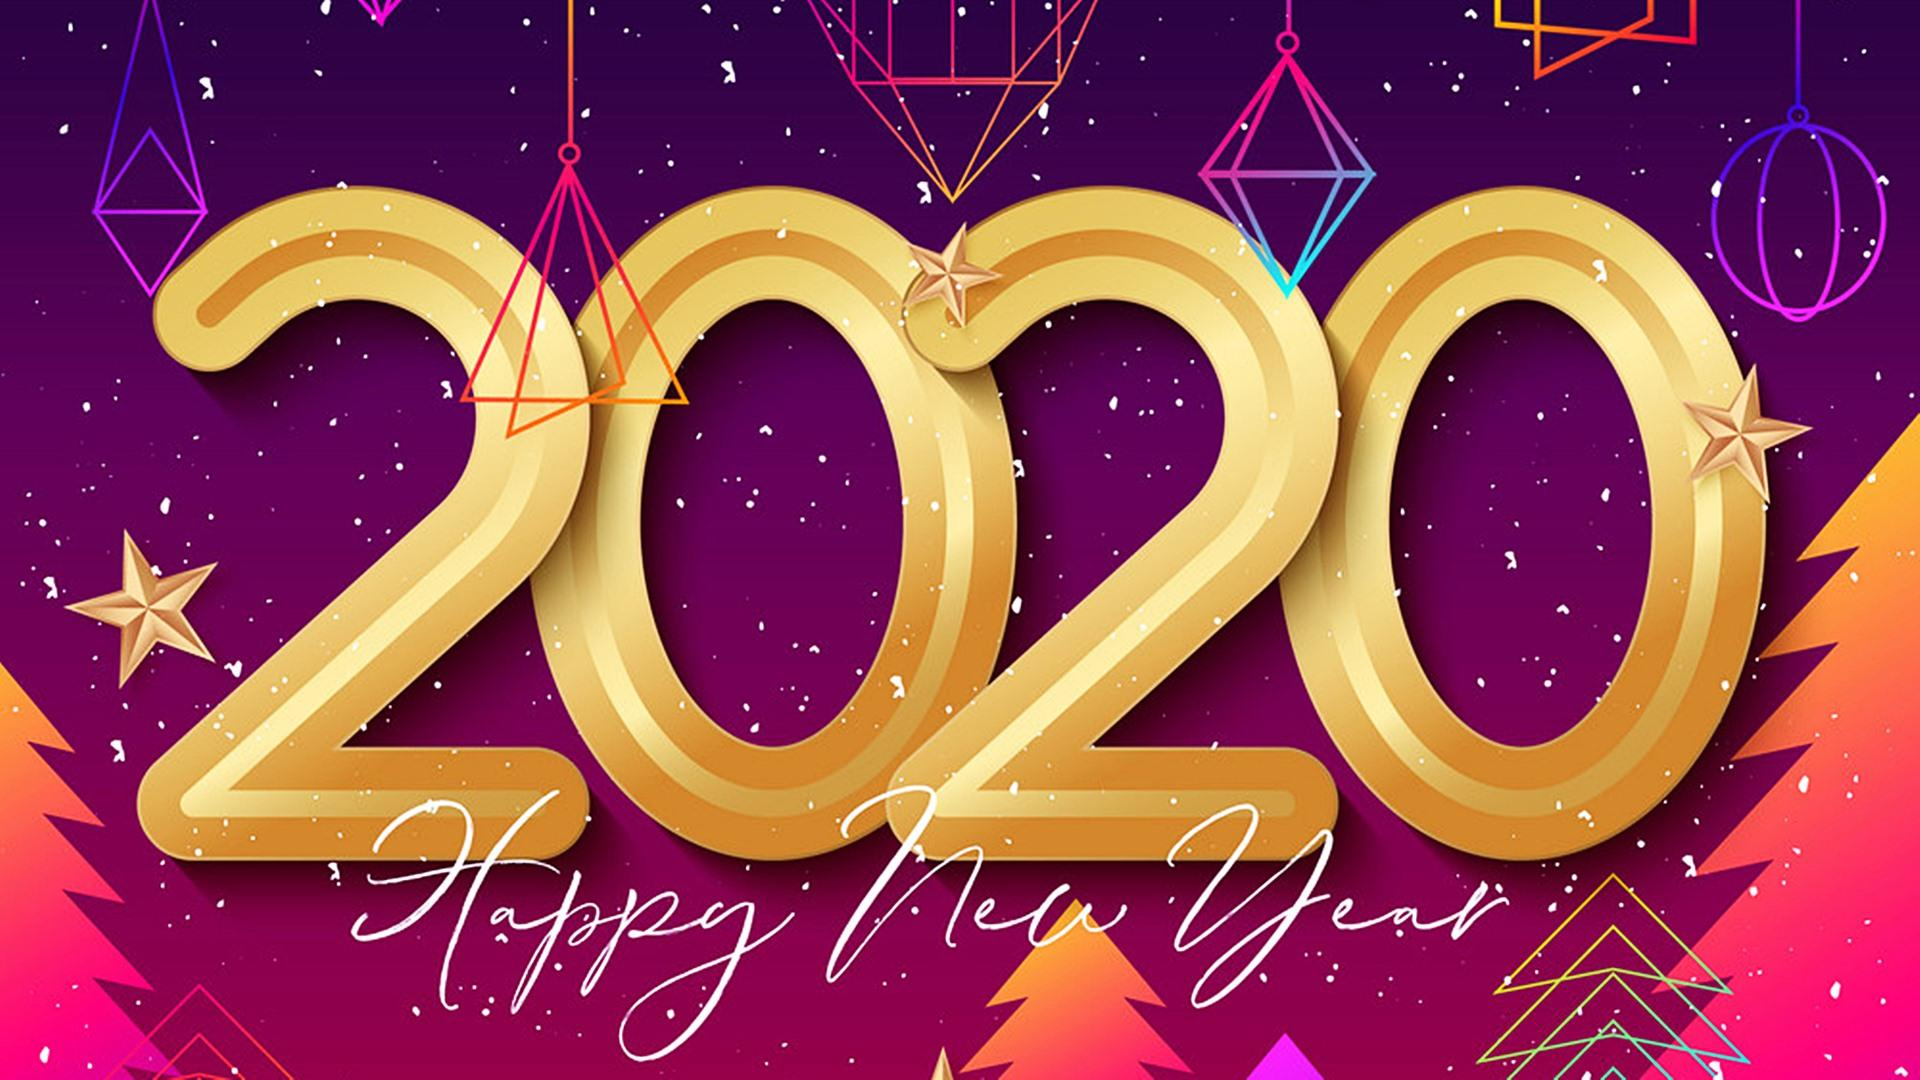 Happy New Year 2020 Best HD Wallpapers 45543